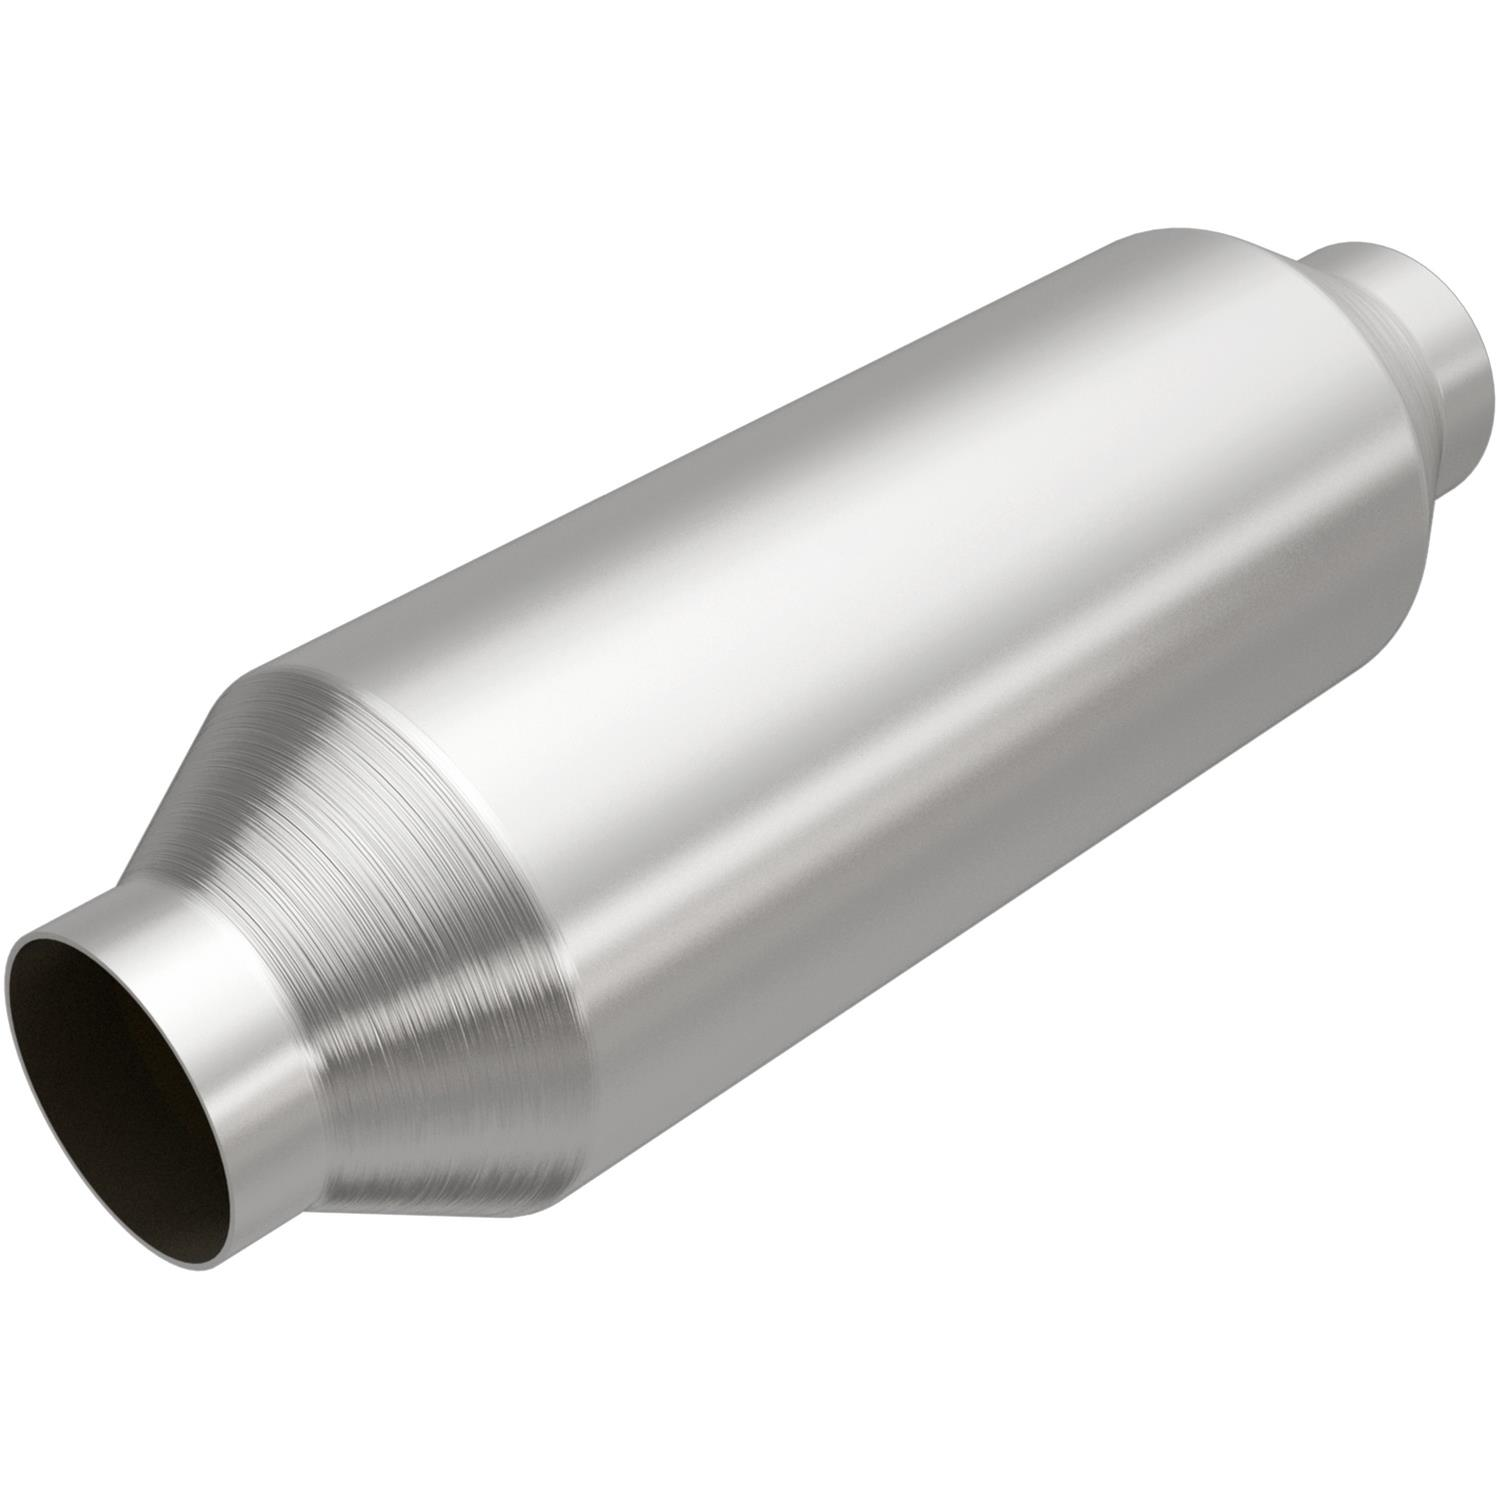 MagnaFlow 53955 Large Stainless Steel Universal Fit Catalytic Converter